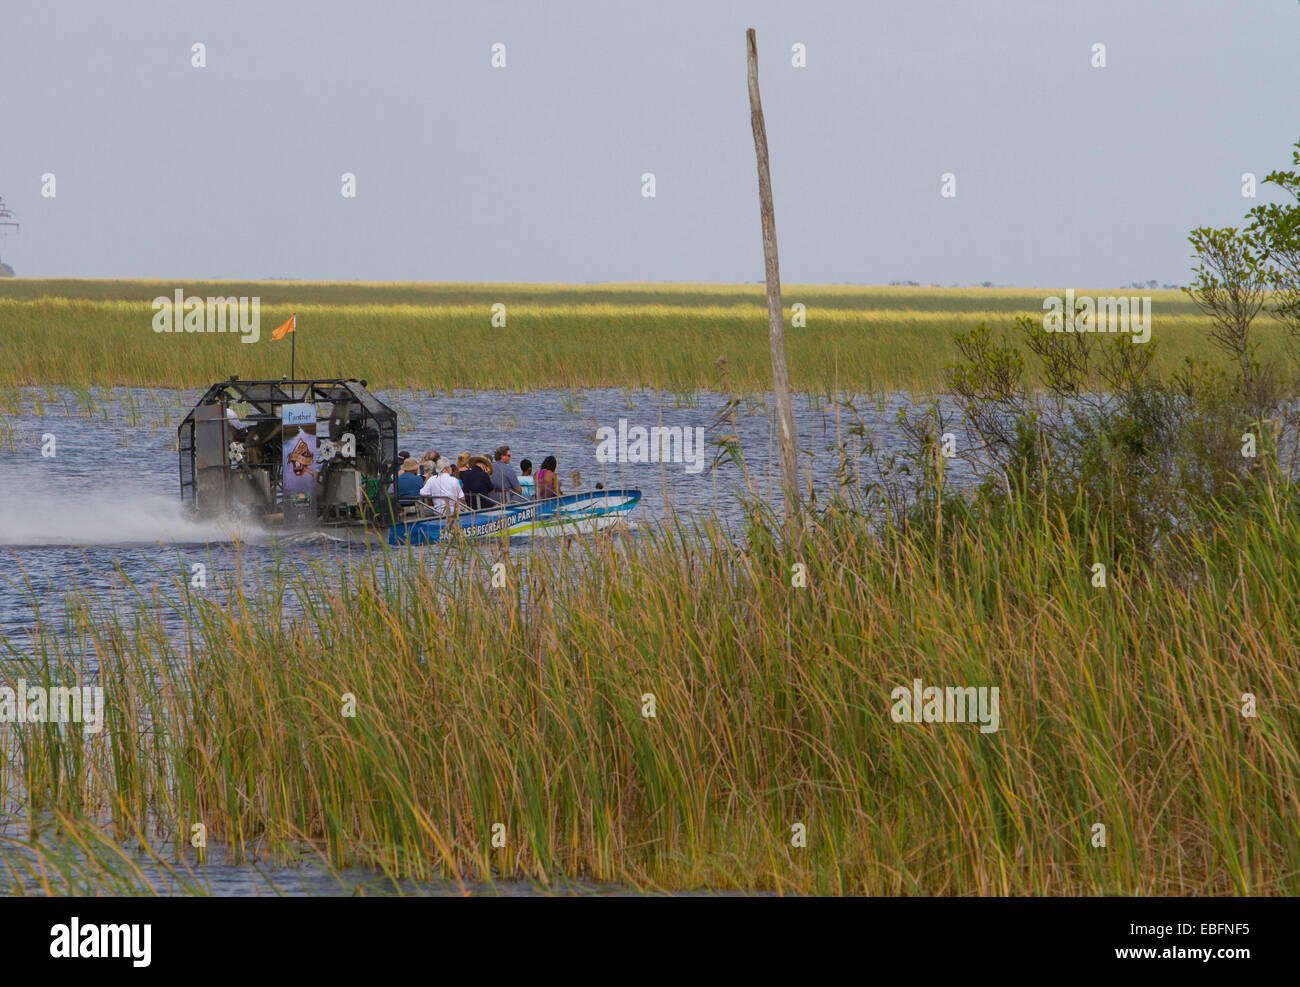 Sawgrass Recreation Park airboat tours west of Fort Lauderdale on the Alligator Alley in South Florida. - Stock Image